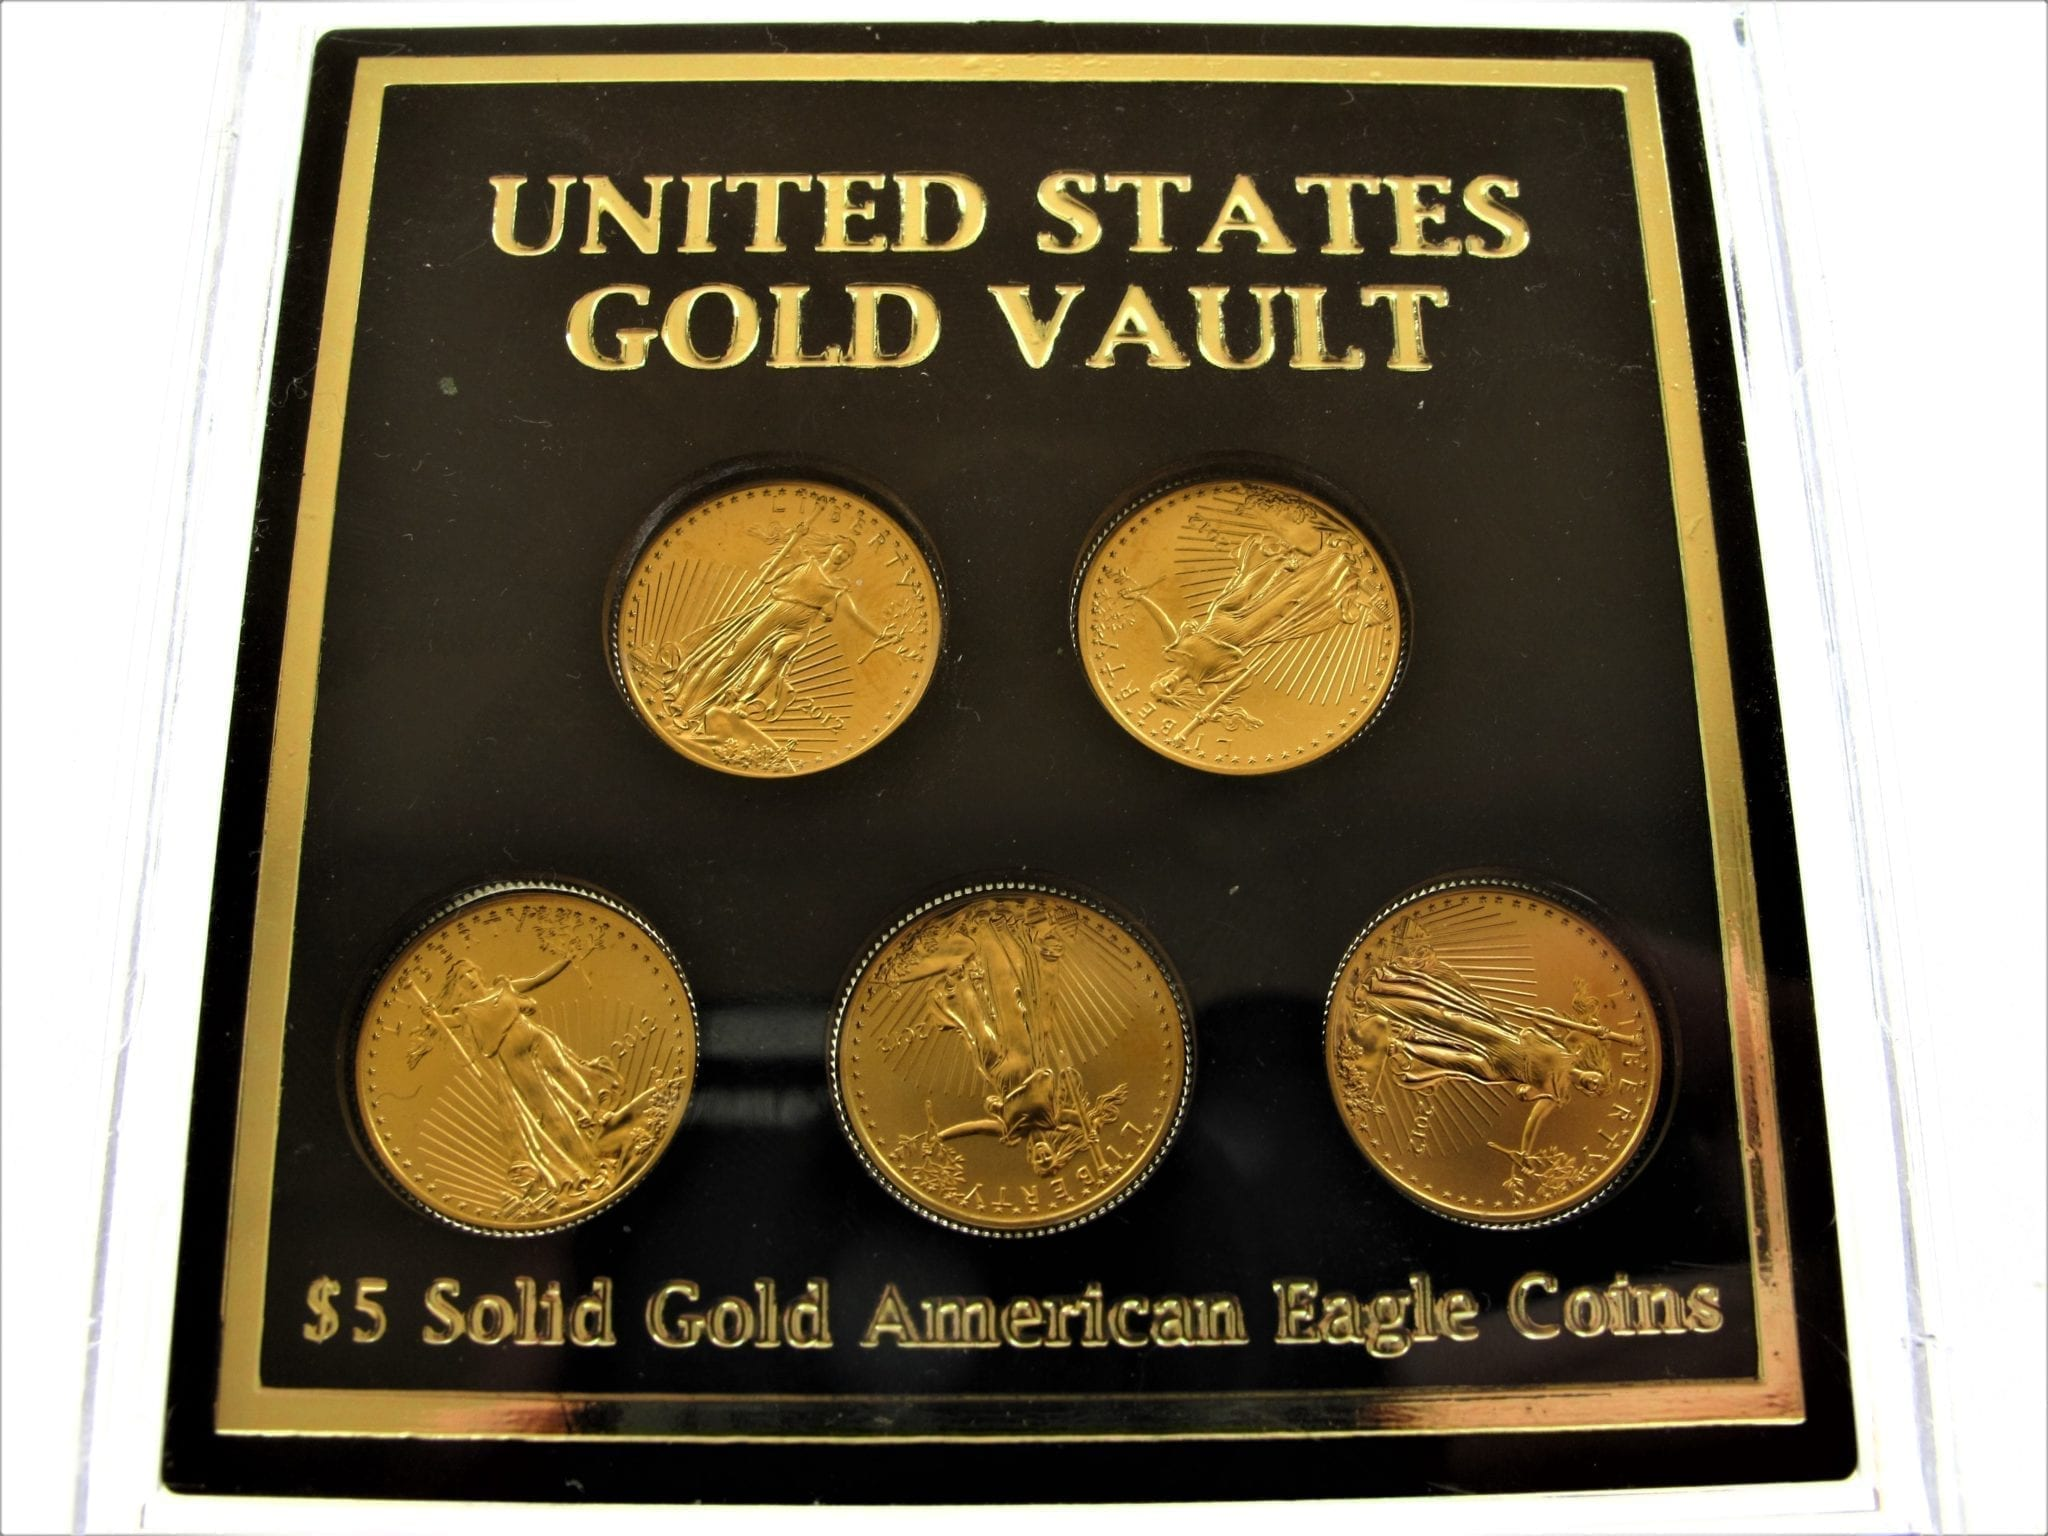 2012 United States Gold Vault 5 Solid Gold American